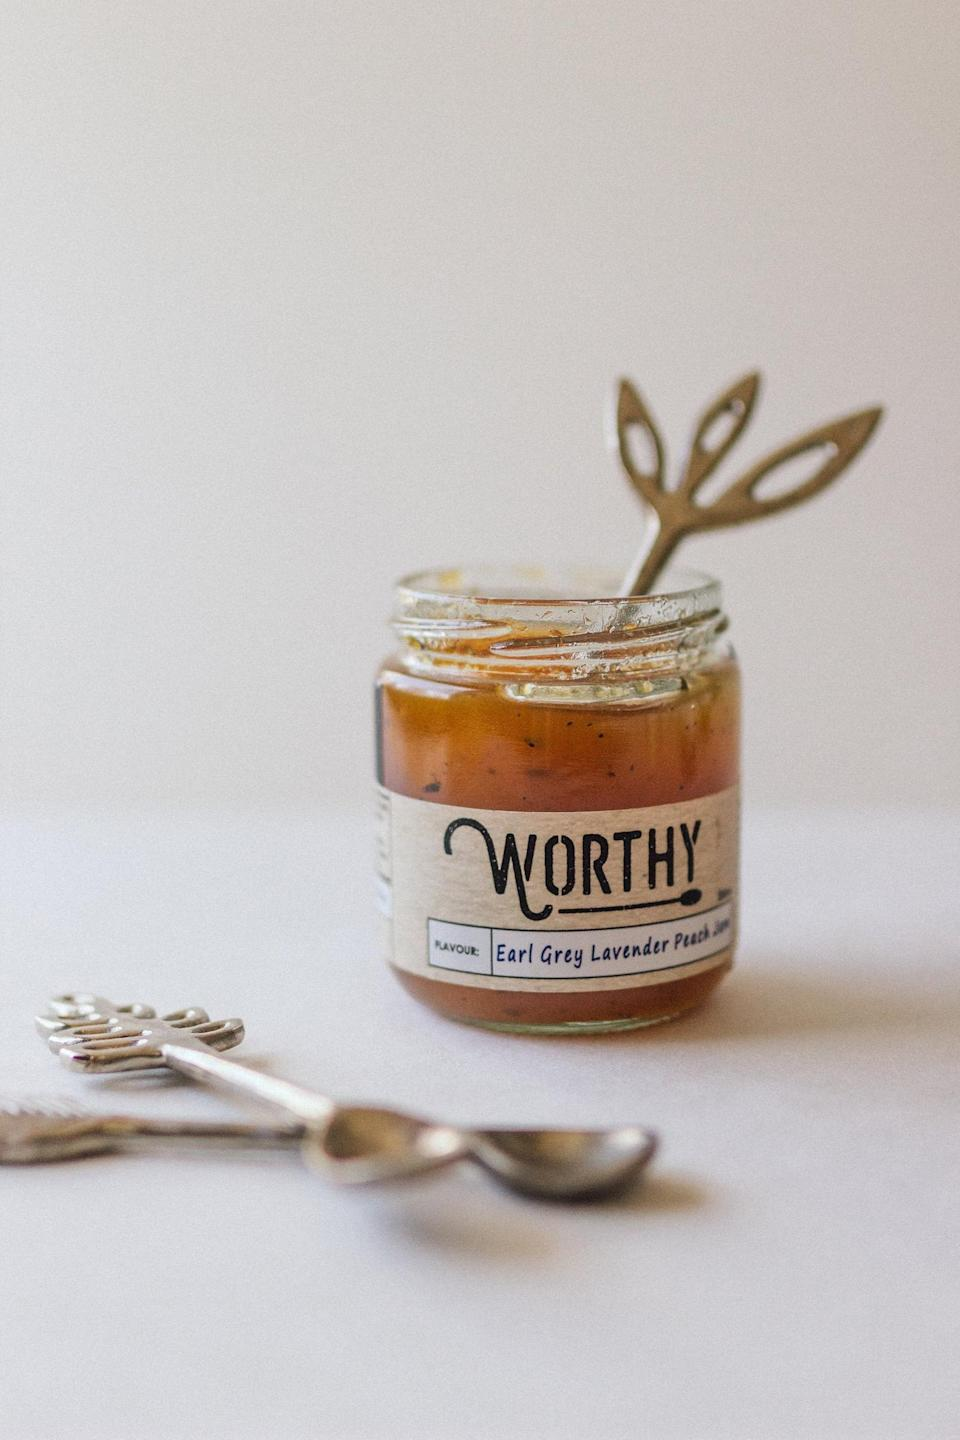 <p>Nothing makes a sweeter gift than a fresh batch of handmade <span>Worthy Earl Grey Lavender Peach Jam</span> ($6).</p>